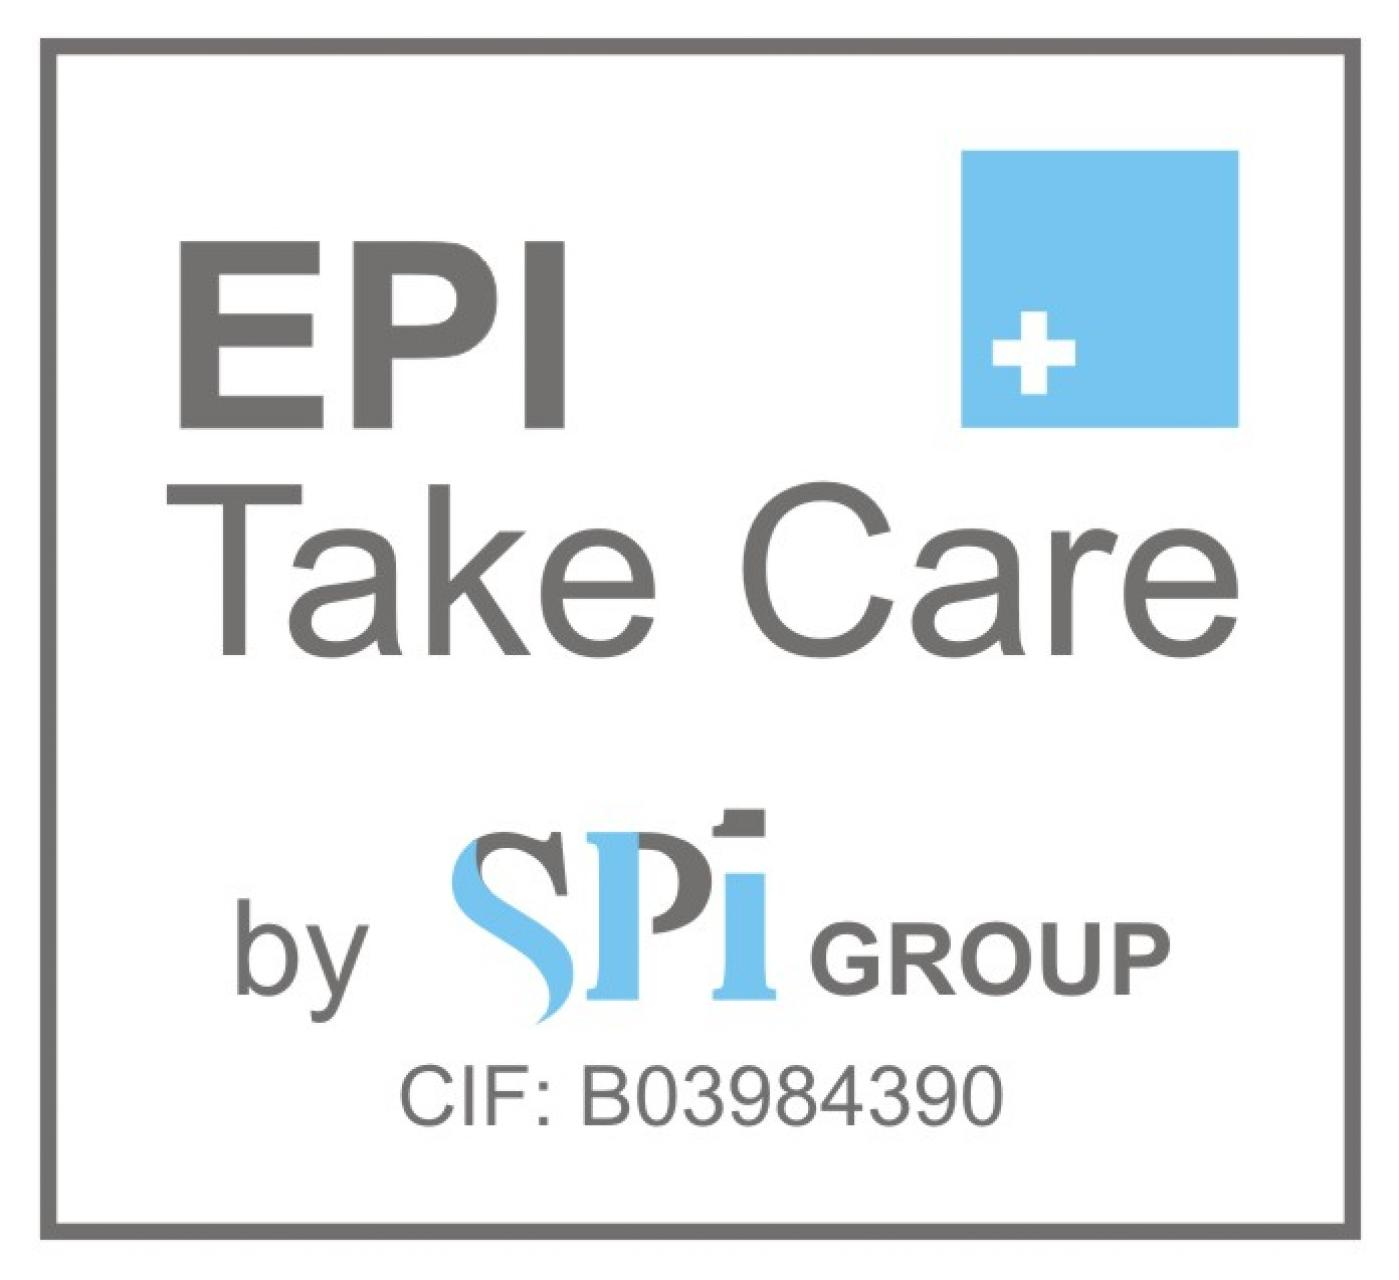 EPITAKECARE-SPIGROUP